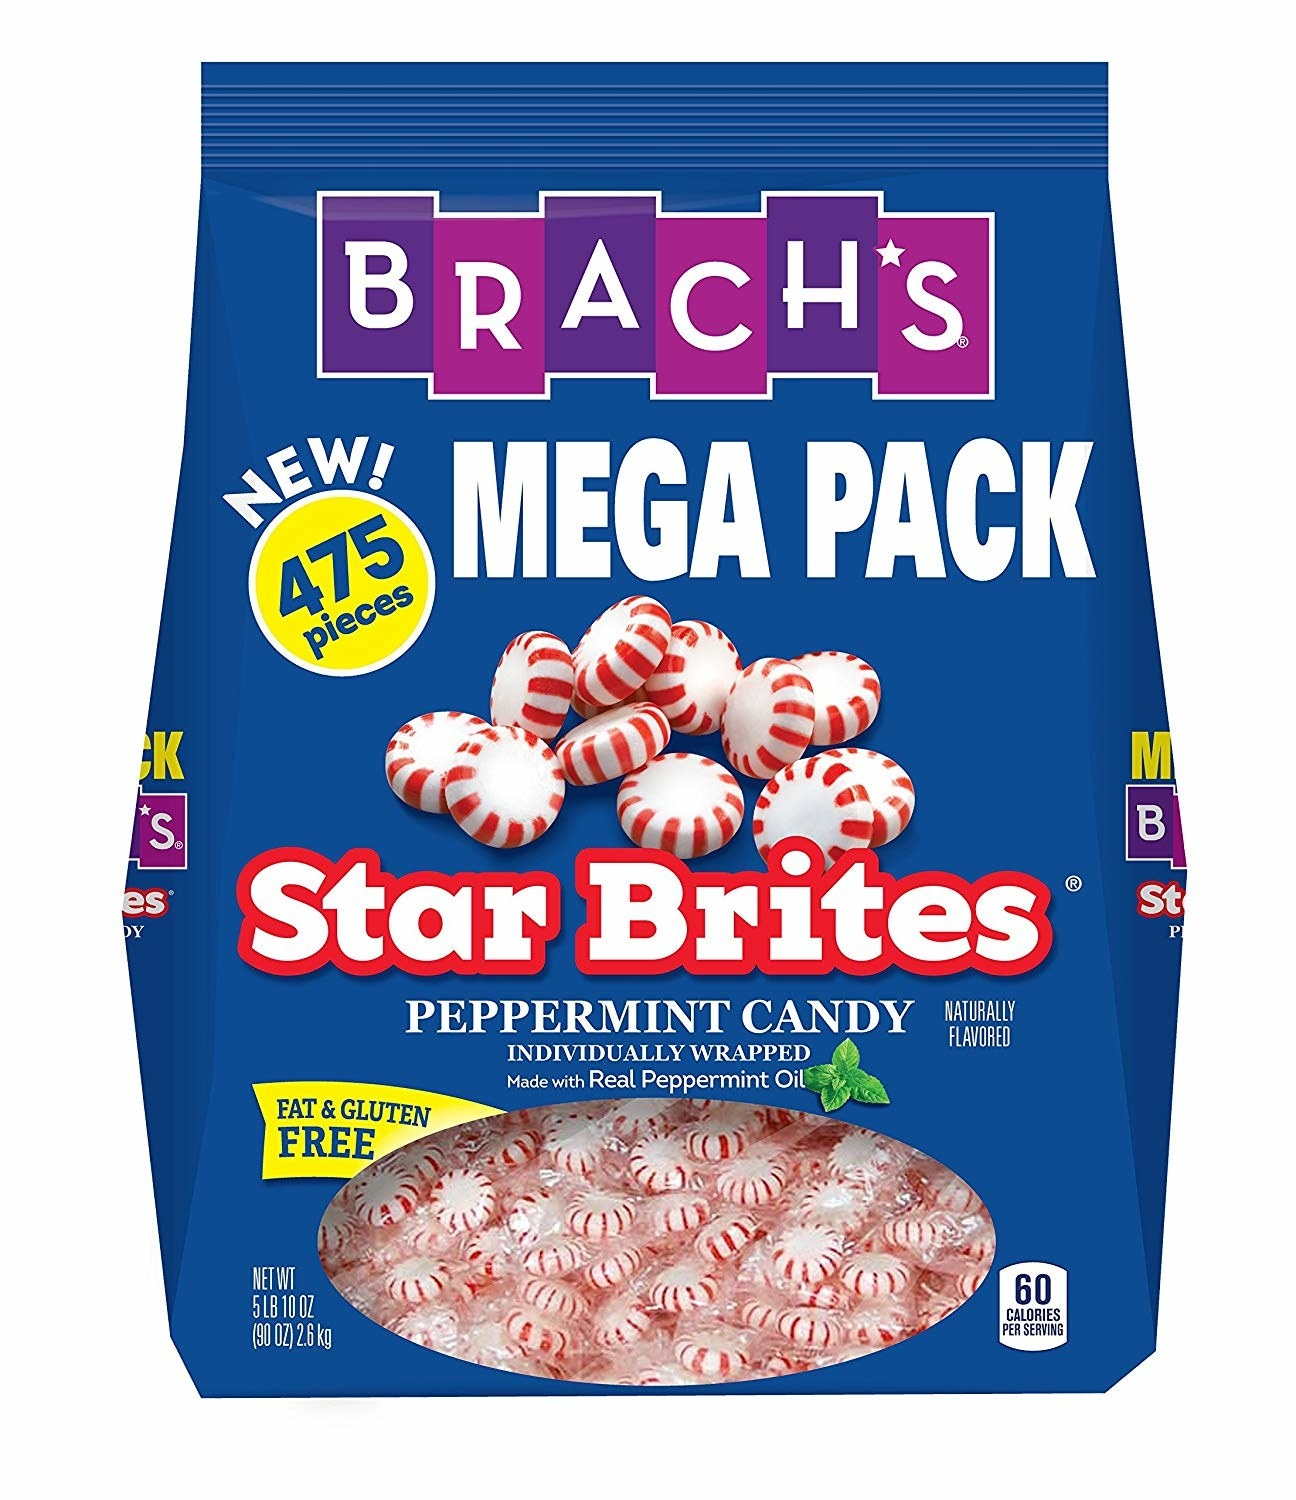 bag of 475 brach's star brites individually wrapped peppermints